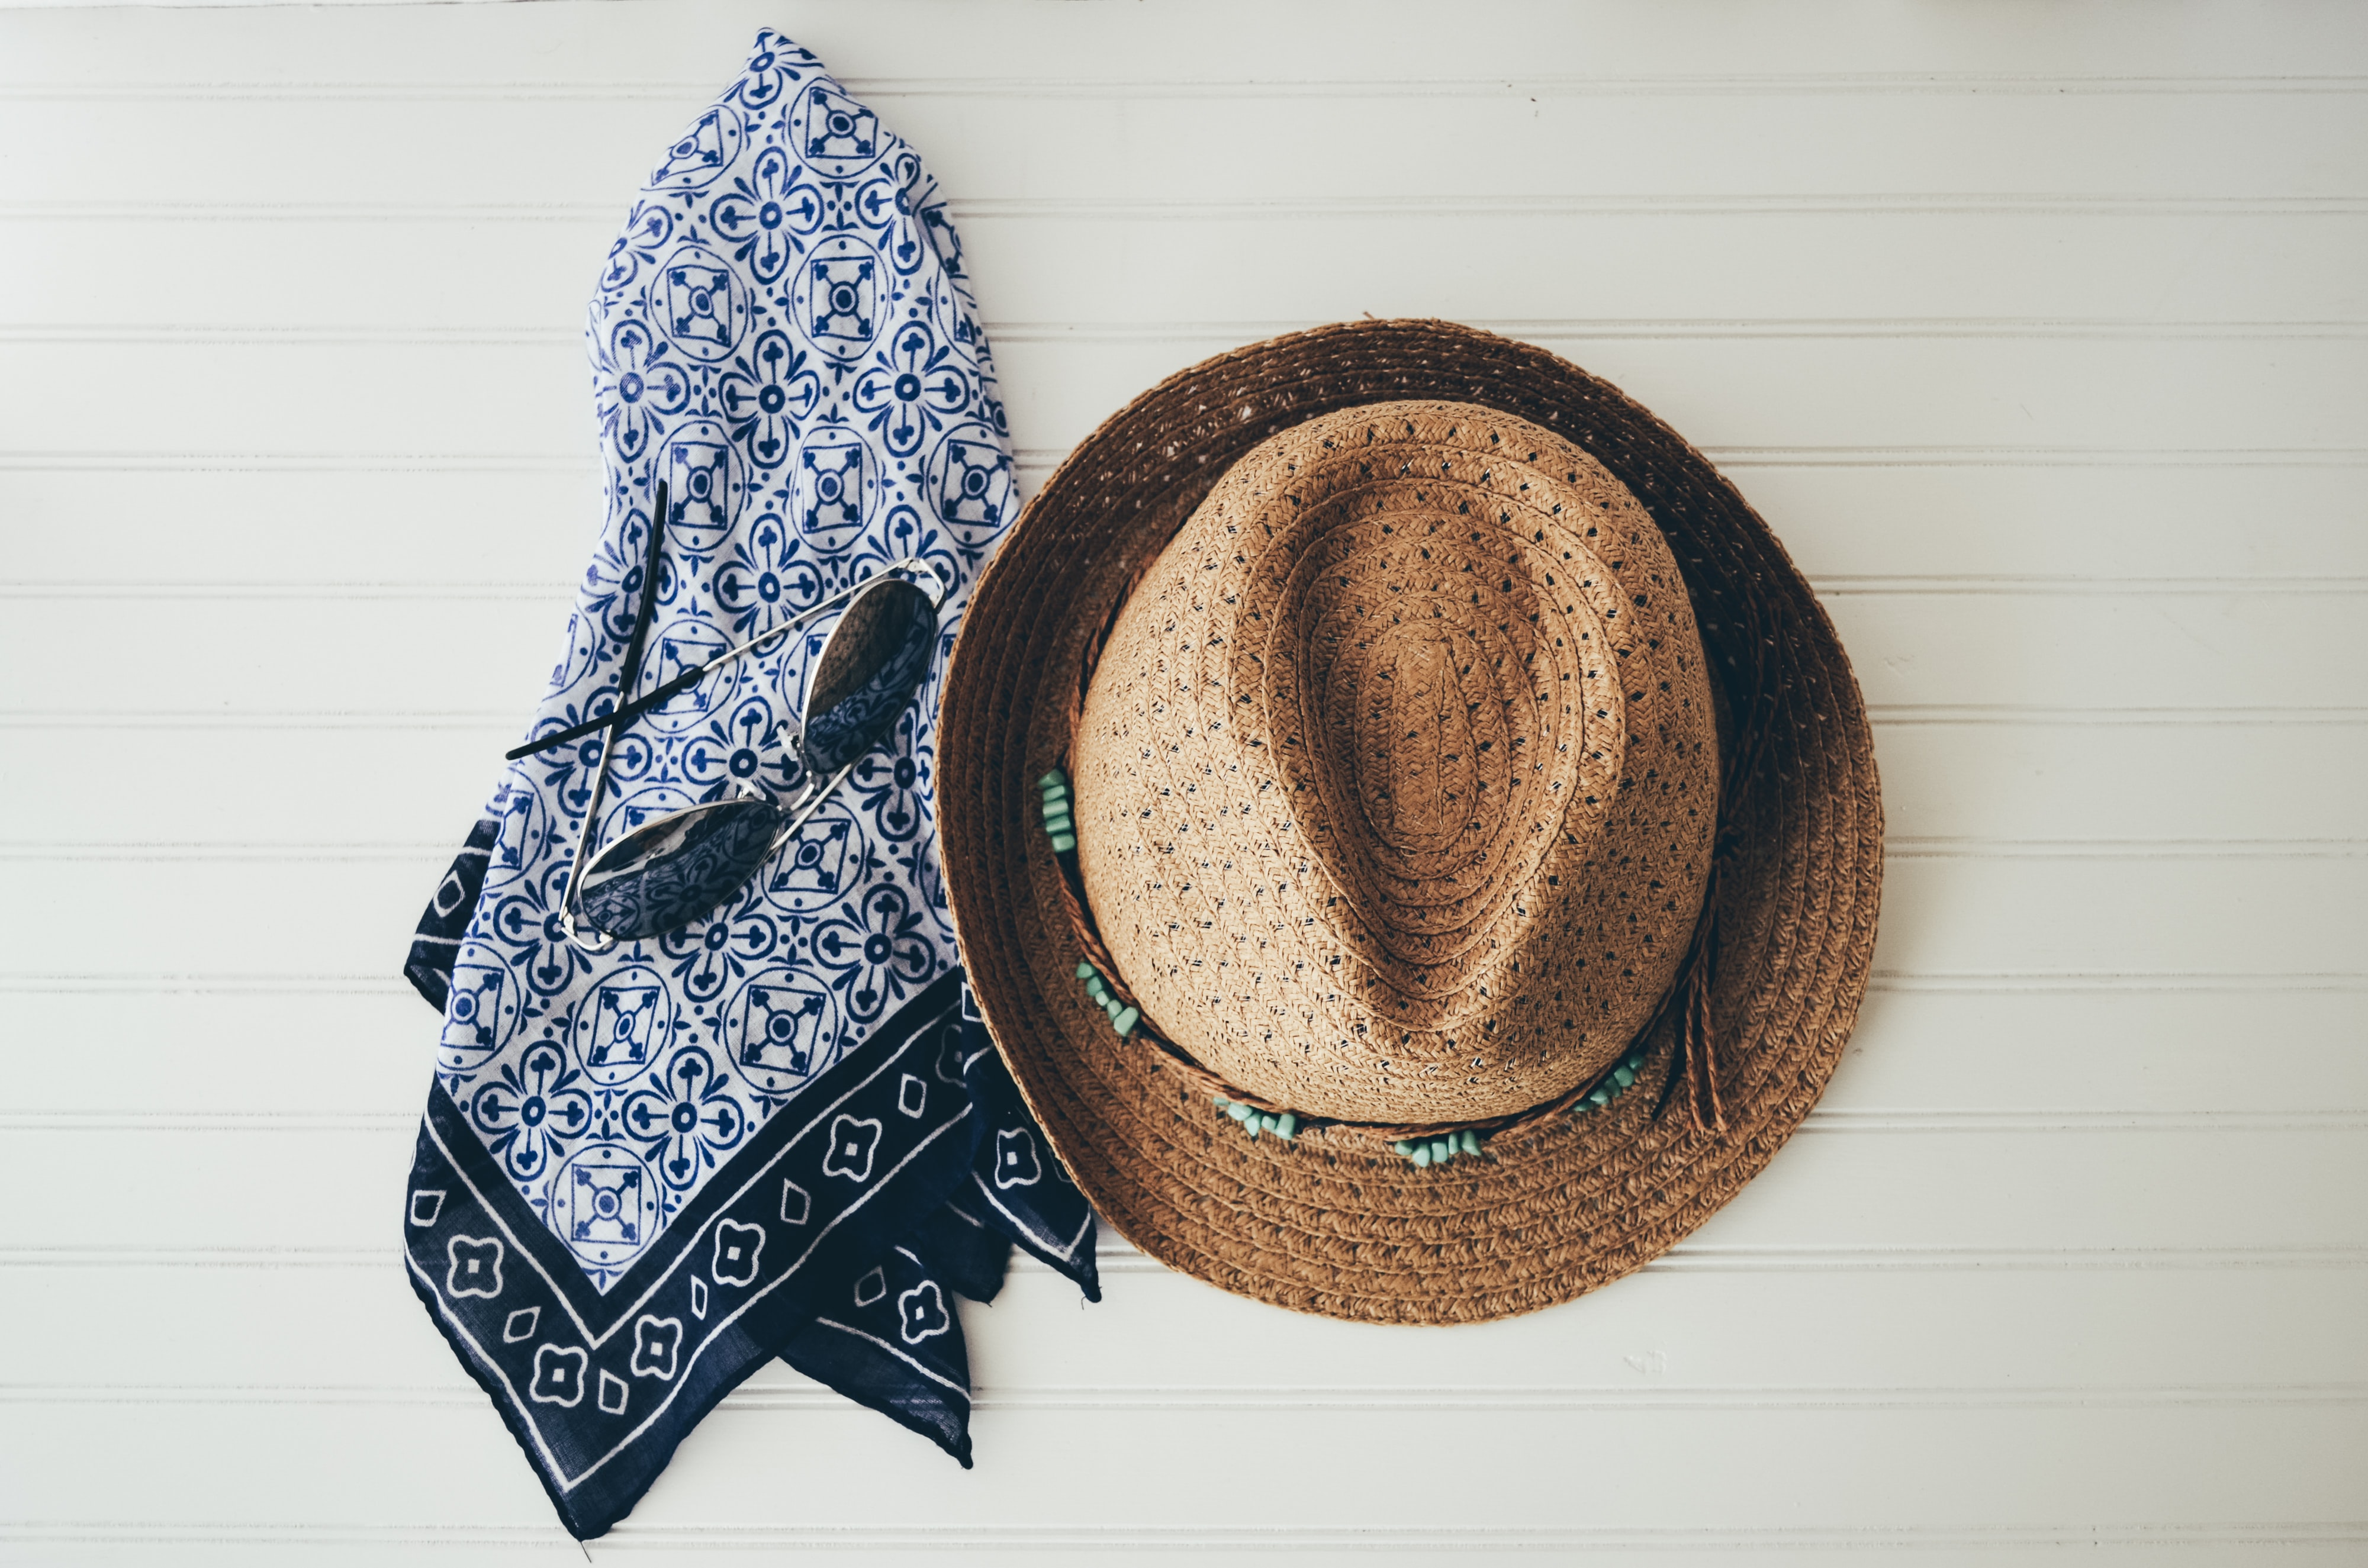 brown hat beside black handkerchief